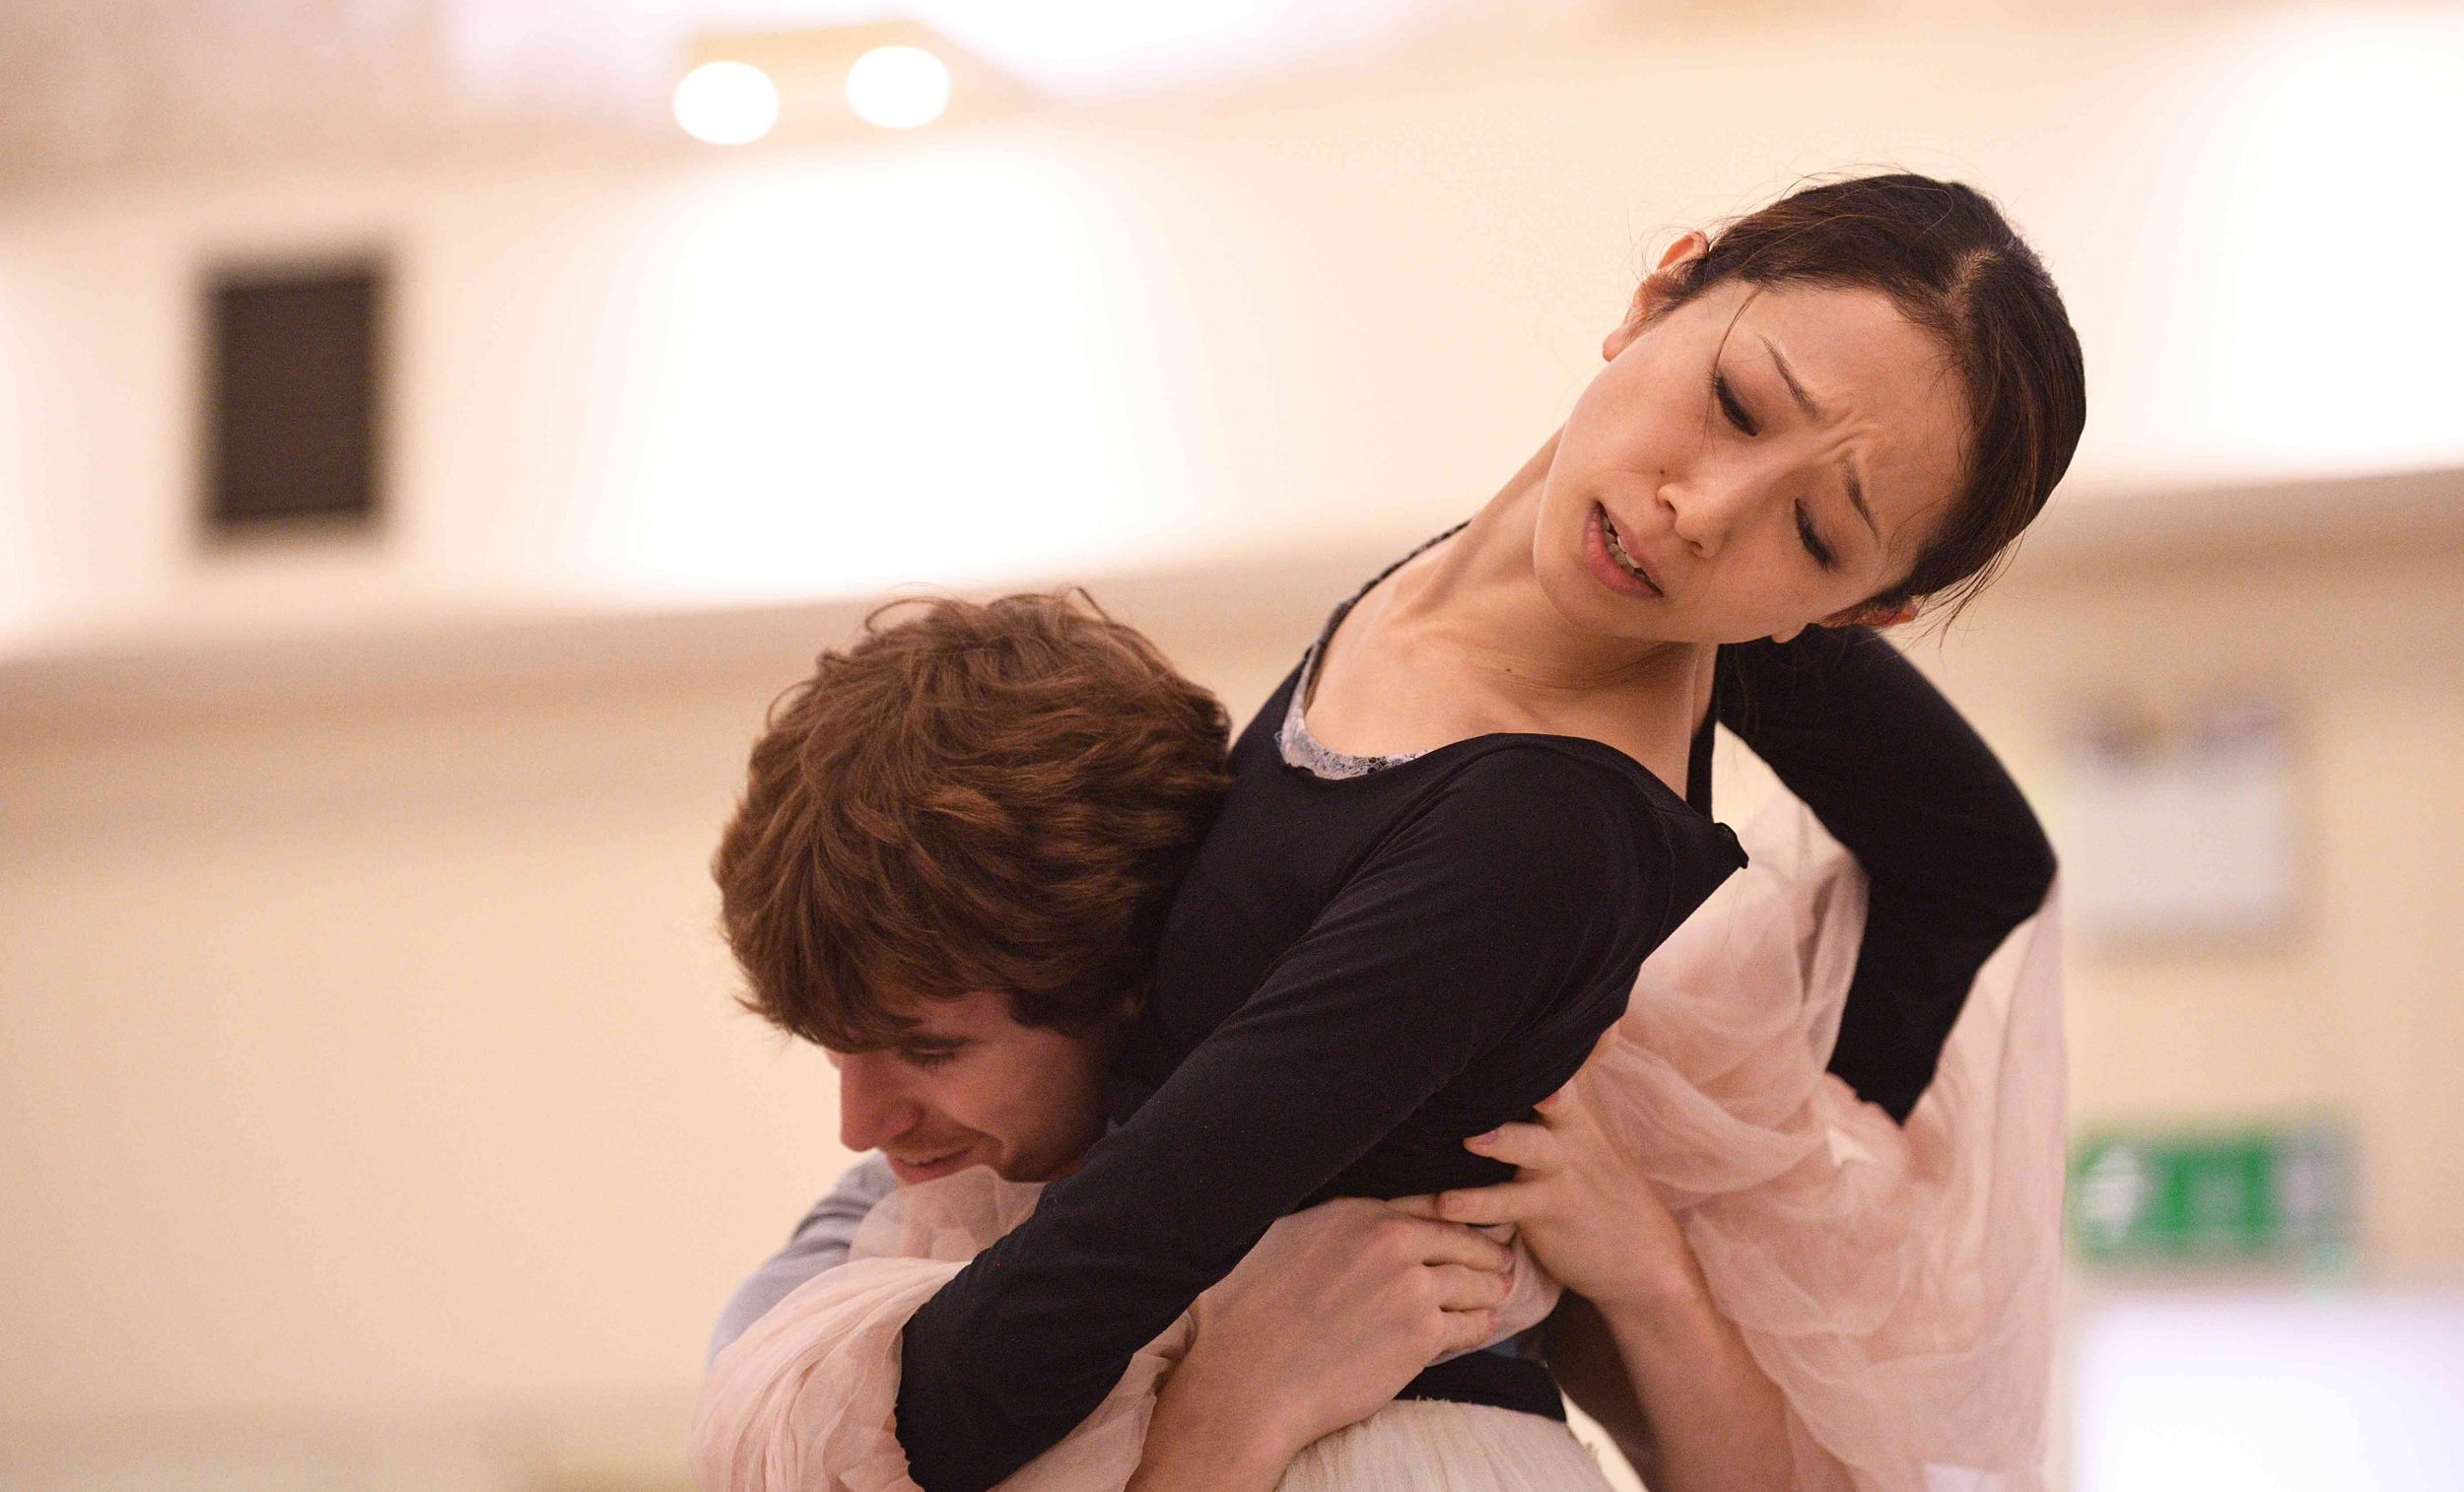 Erina-Takahashi-and-Aitor-Arrieta-rehearsing-La-Sylphide-©-Laurent-Liotardo-(1)